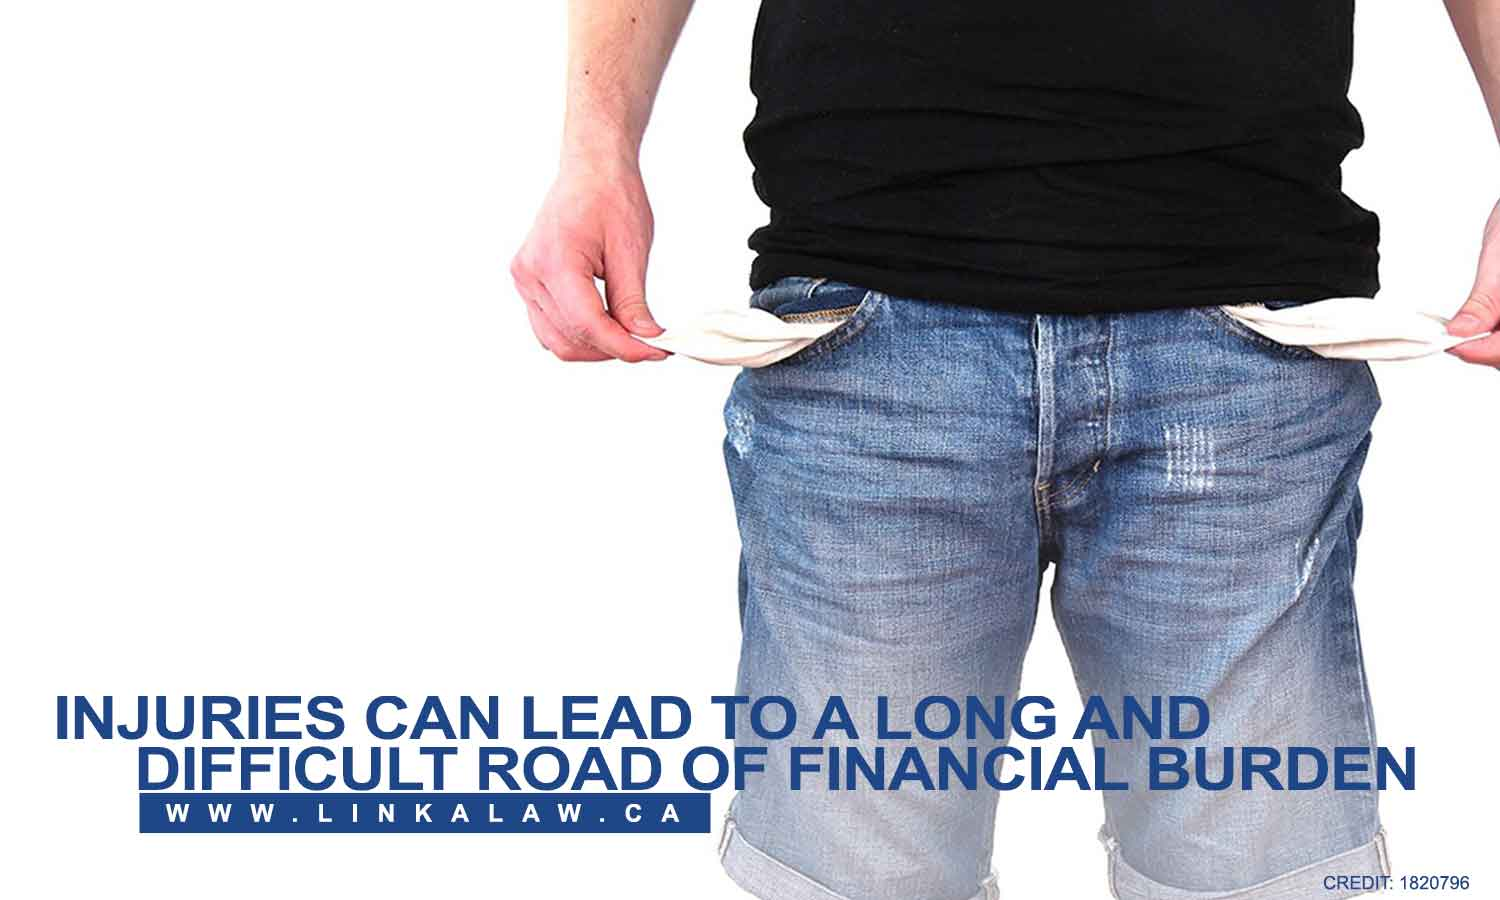 Injuries can lead to a long and difficult road of financial burden